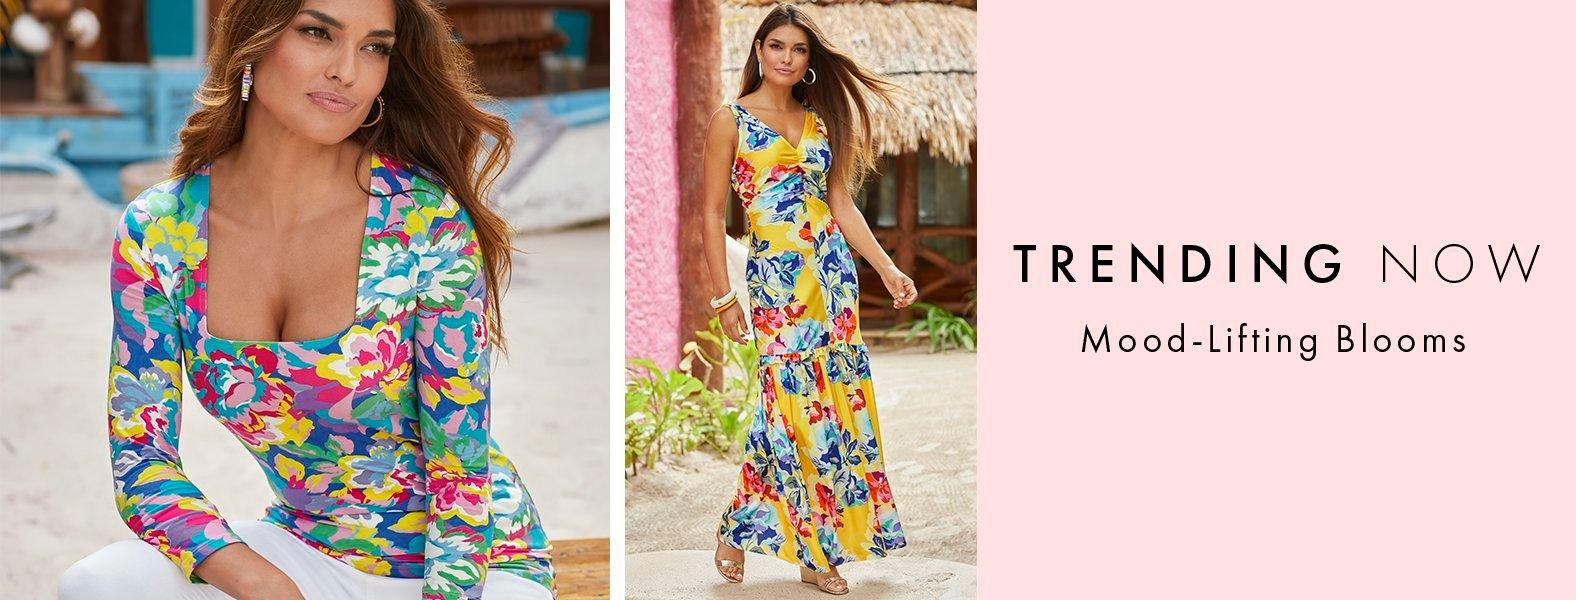 left model wearing a multicolored floral print three-quarter sleeve top. right model wearing a multicolored floral print sleeveless maxi dress.